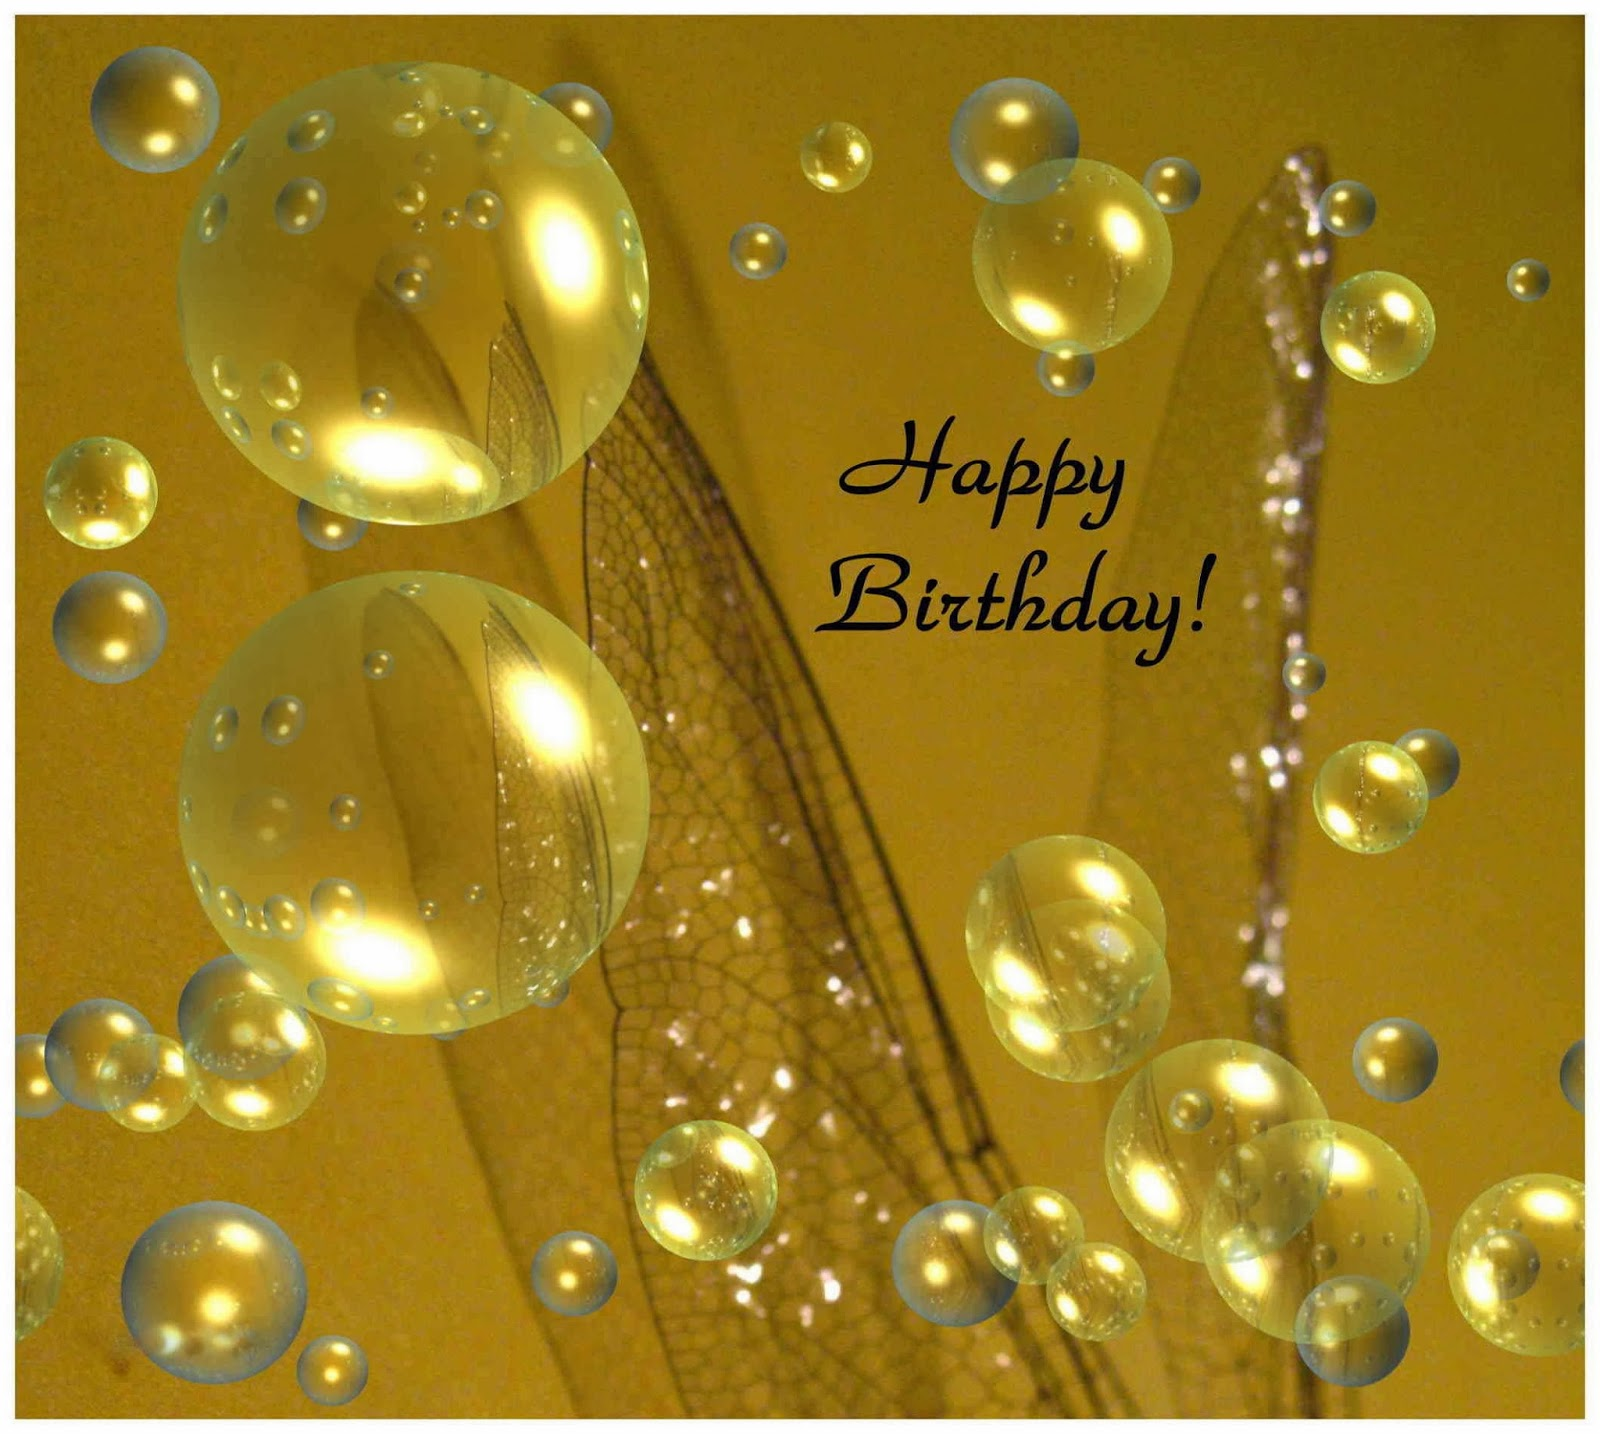 Wallpaper download birthday - Happy Birthday Wallpaper Free Download Unique Wallpapers